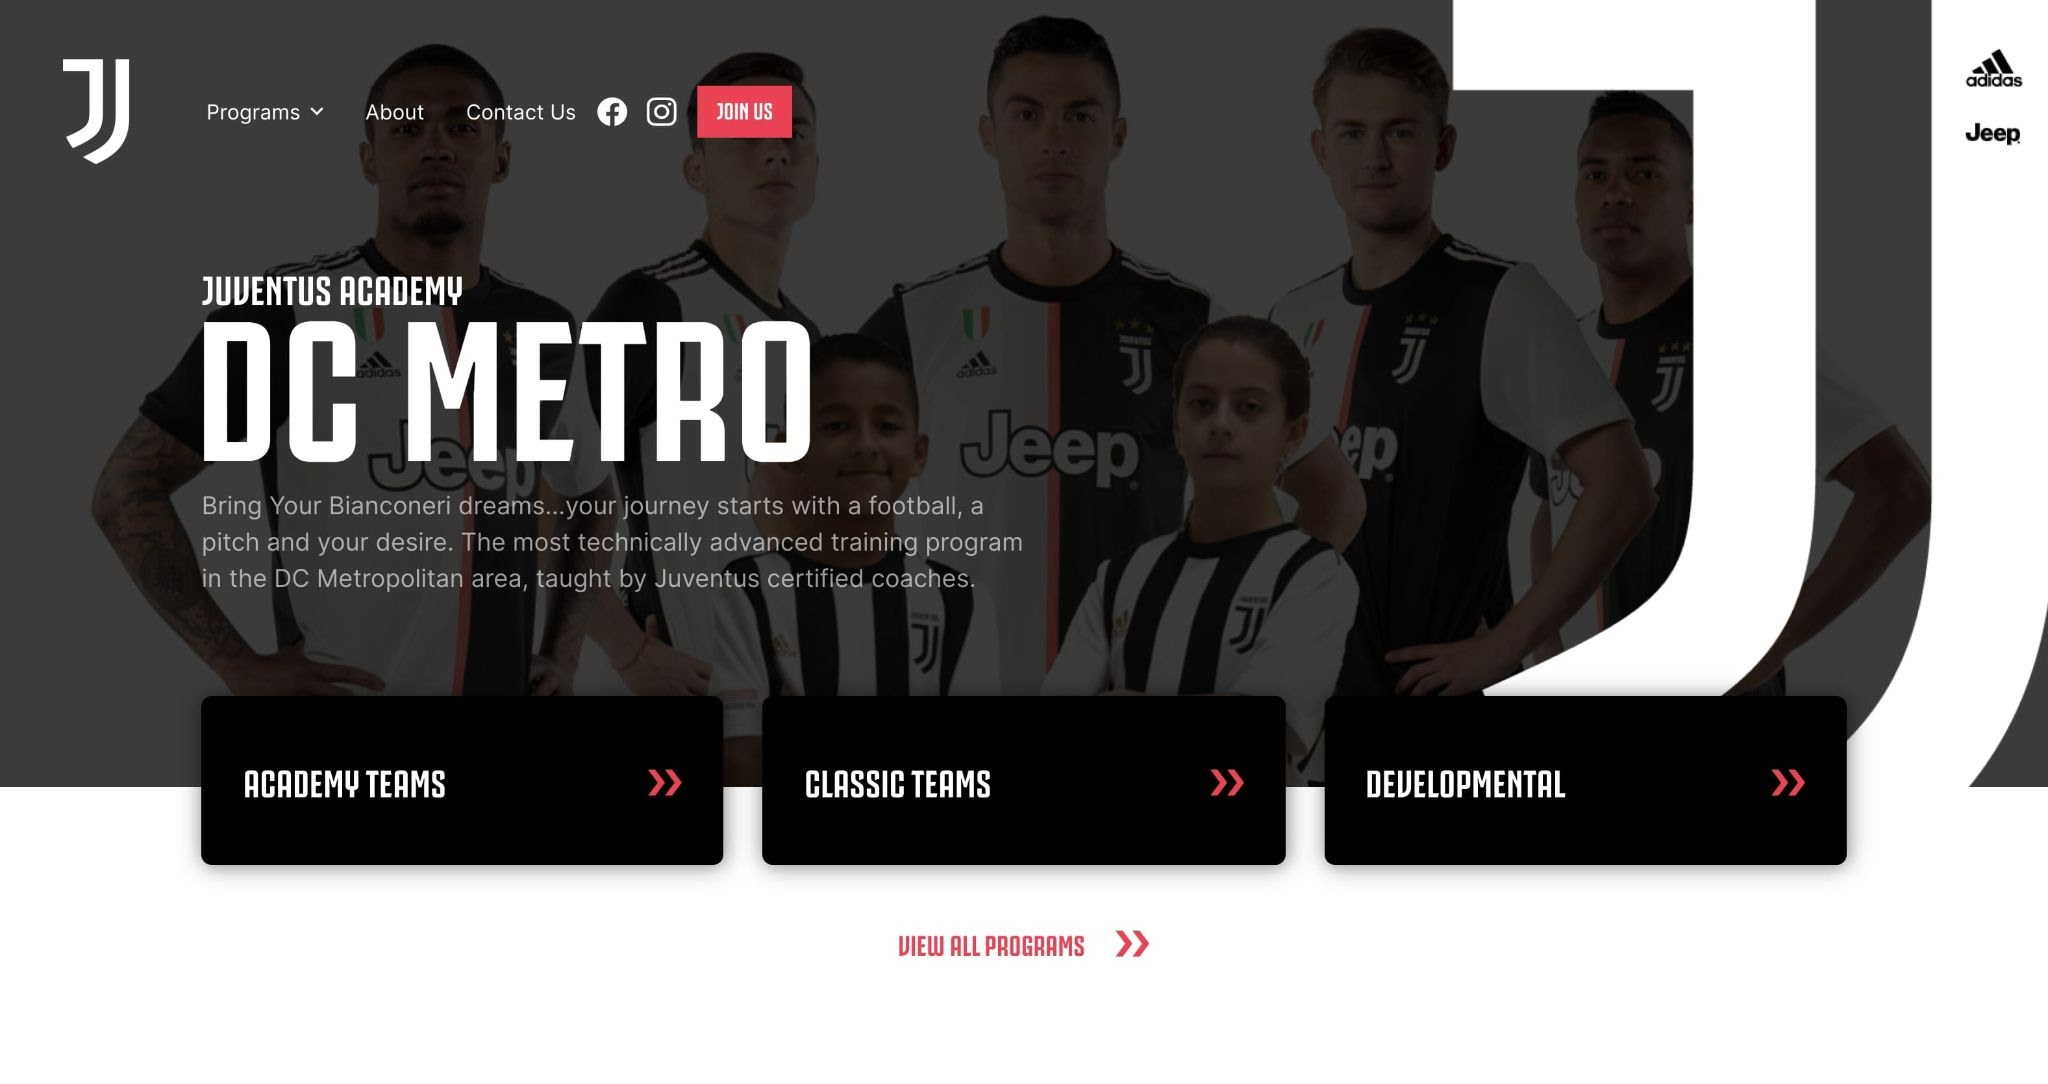 An image of the Juventus Academy DC website.